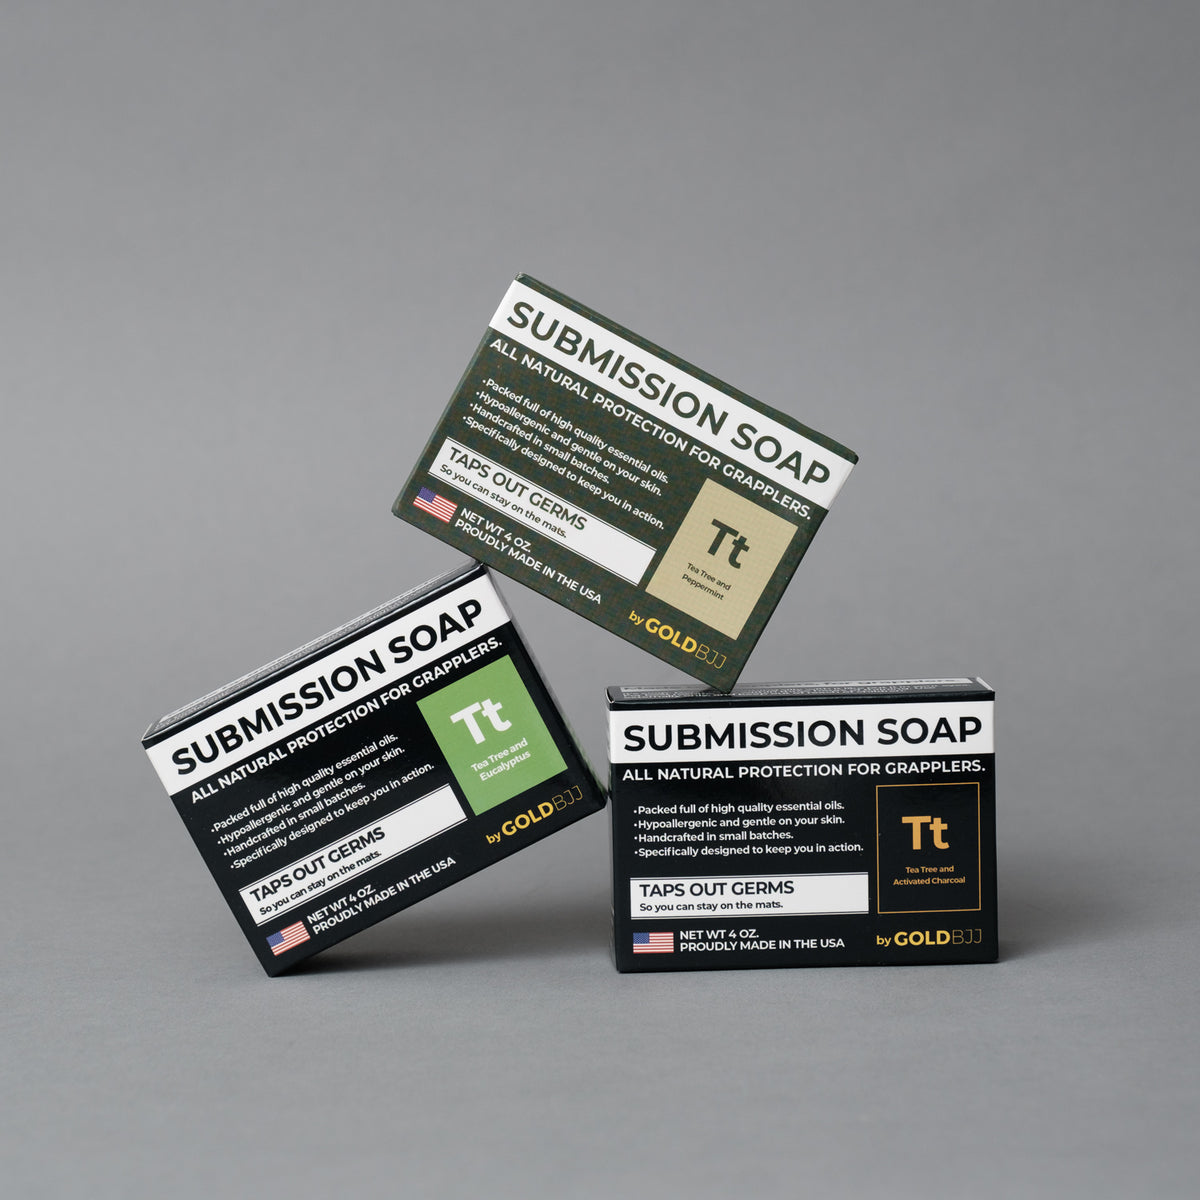 Submission Soap